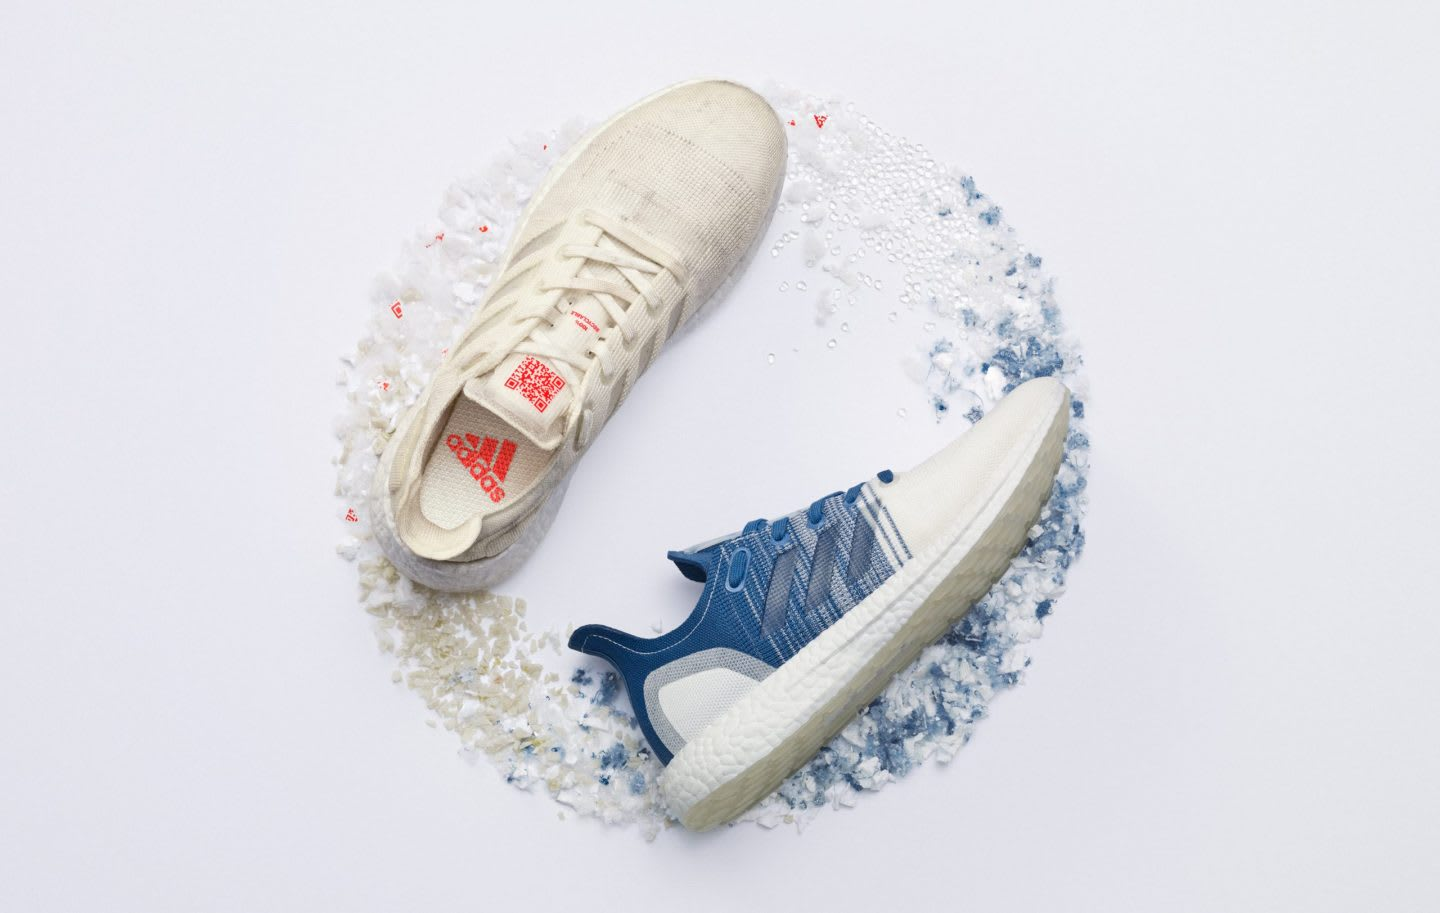 adidas FUTURECRAFT.LOOP sustainable shoes, trainers, sneakers, adidas, sustainability